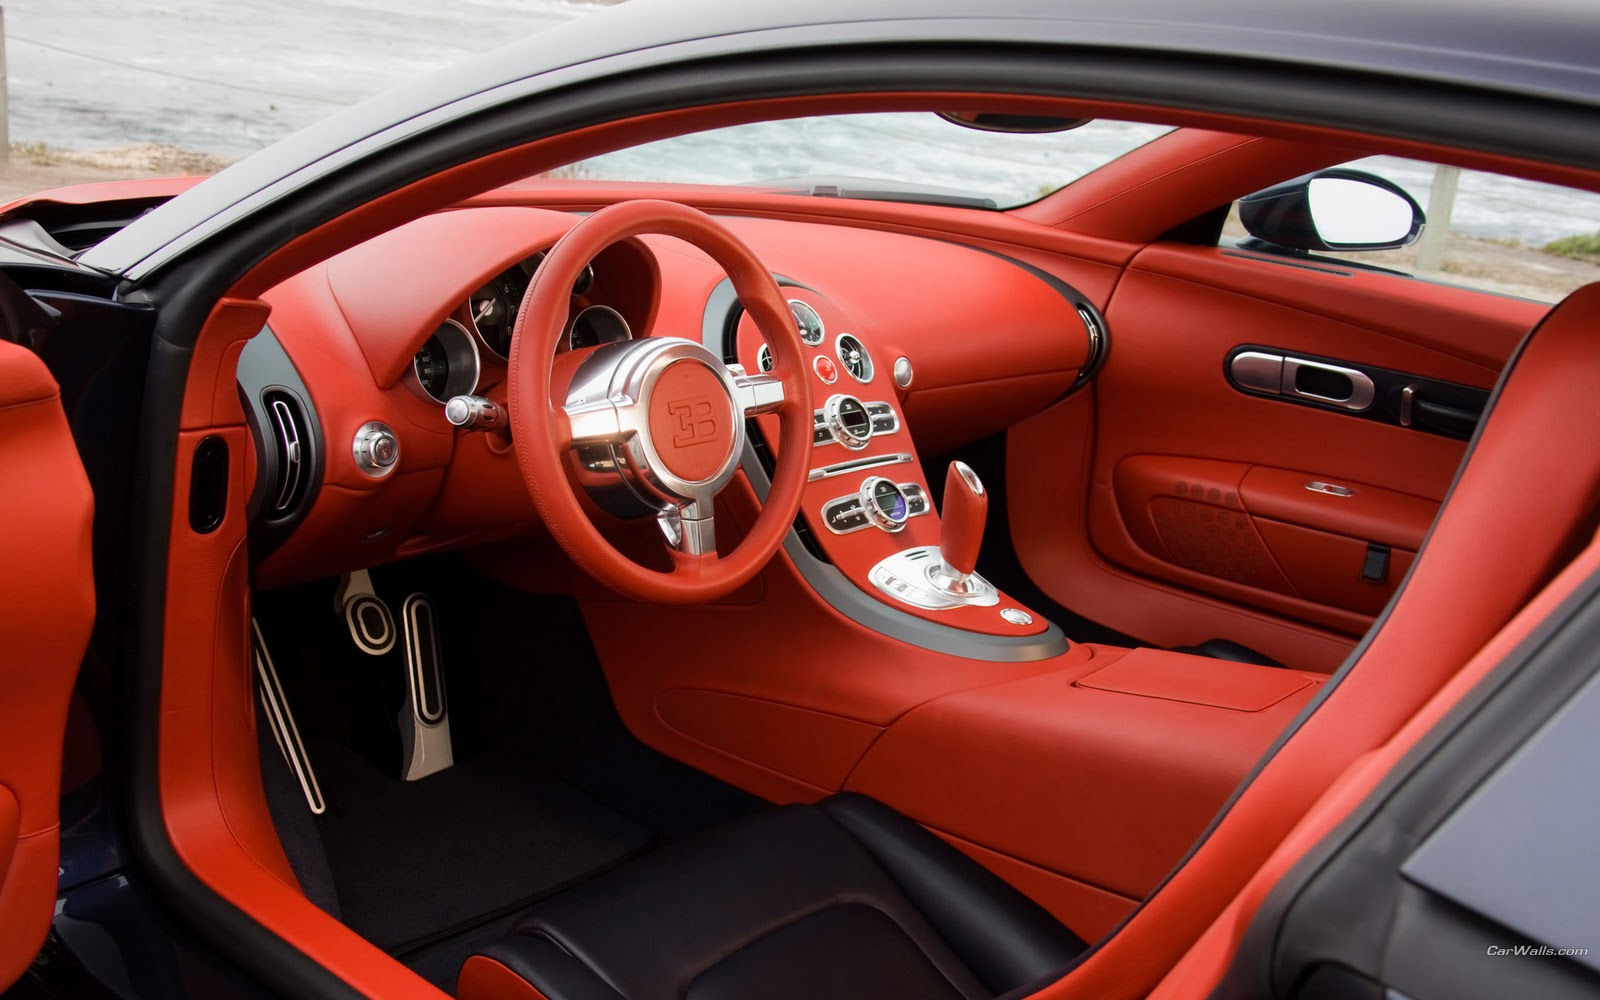 Bugatti car interior wallpapers hd nice wallpapers - Most popular car interior colors ...